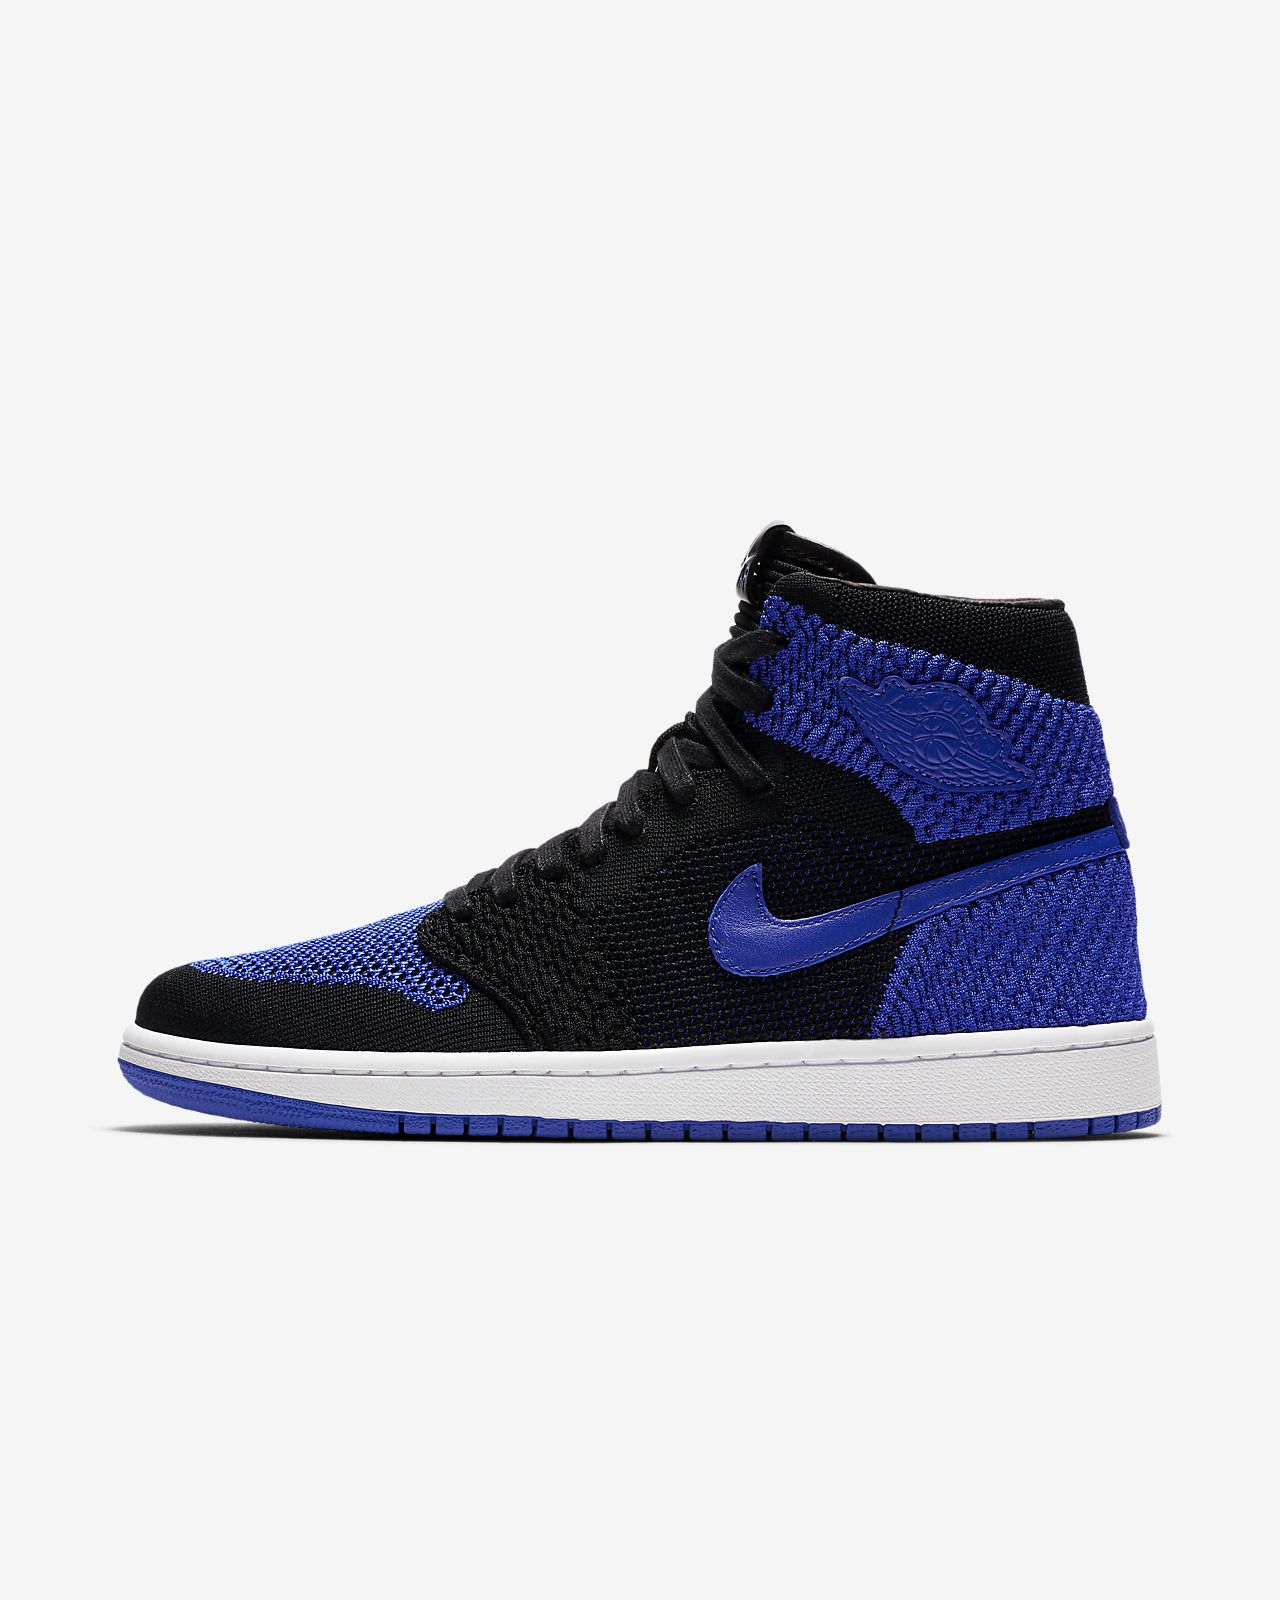 sneakers for cheap 0574e 3608f Air Jordan 1 Retro High Flyknit